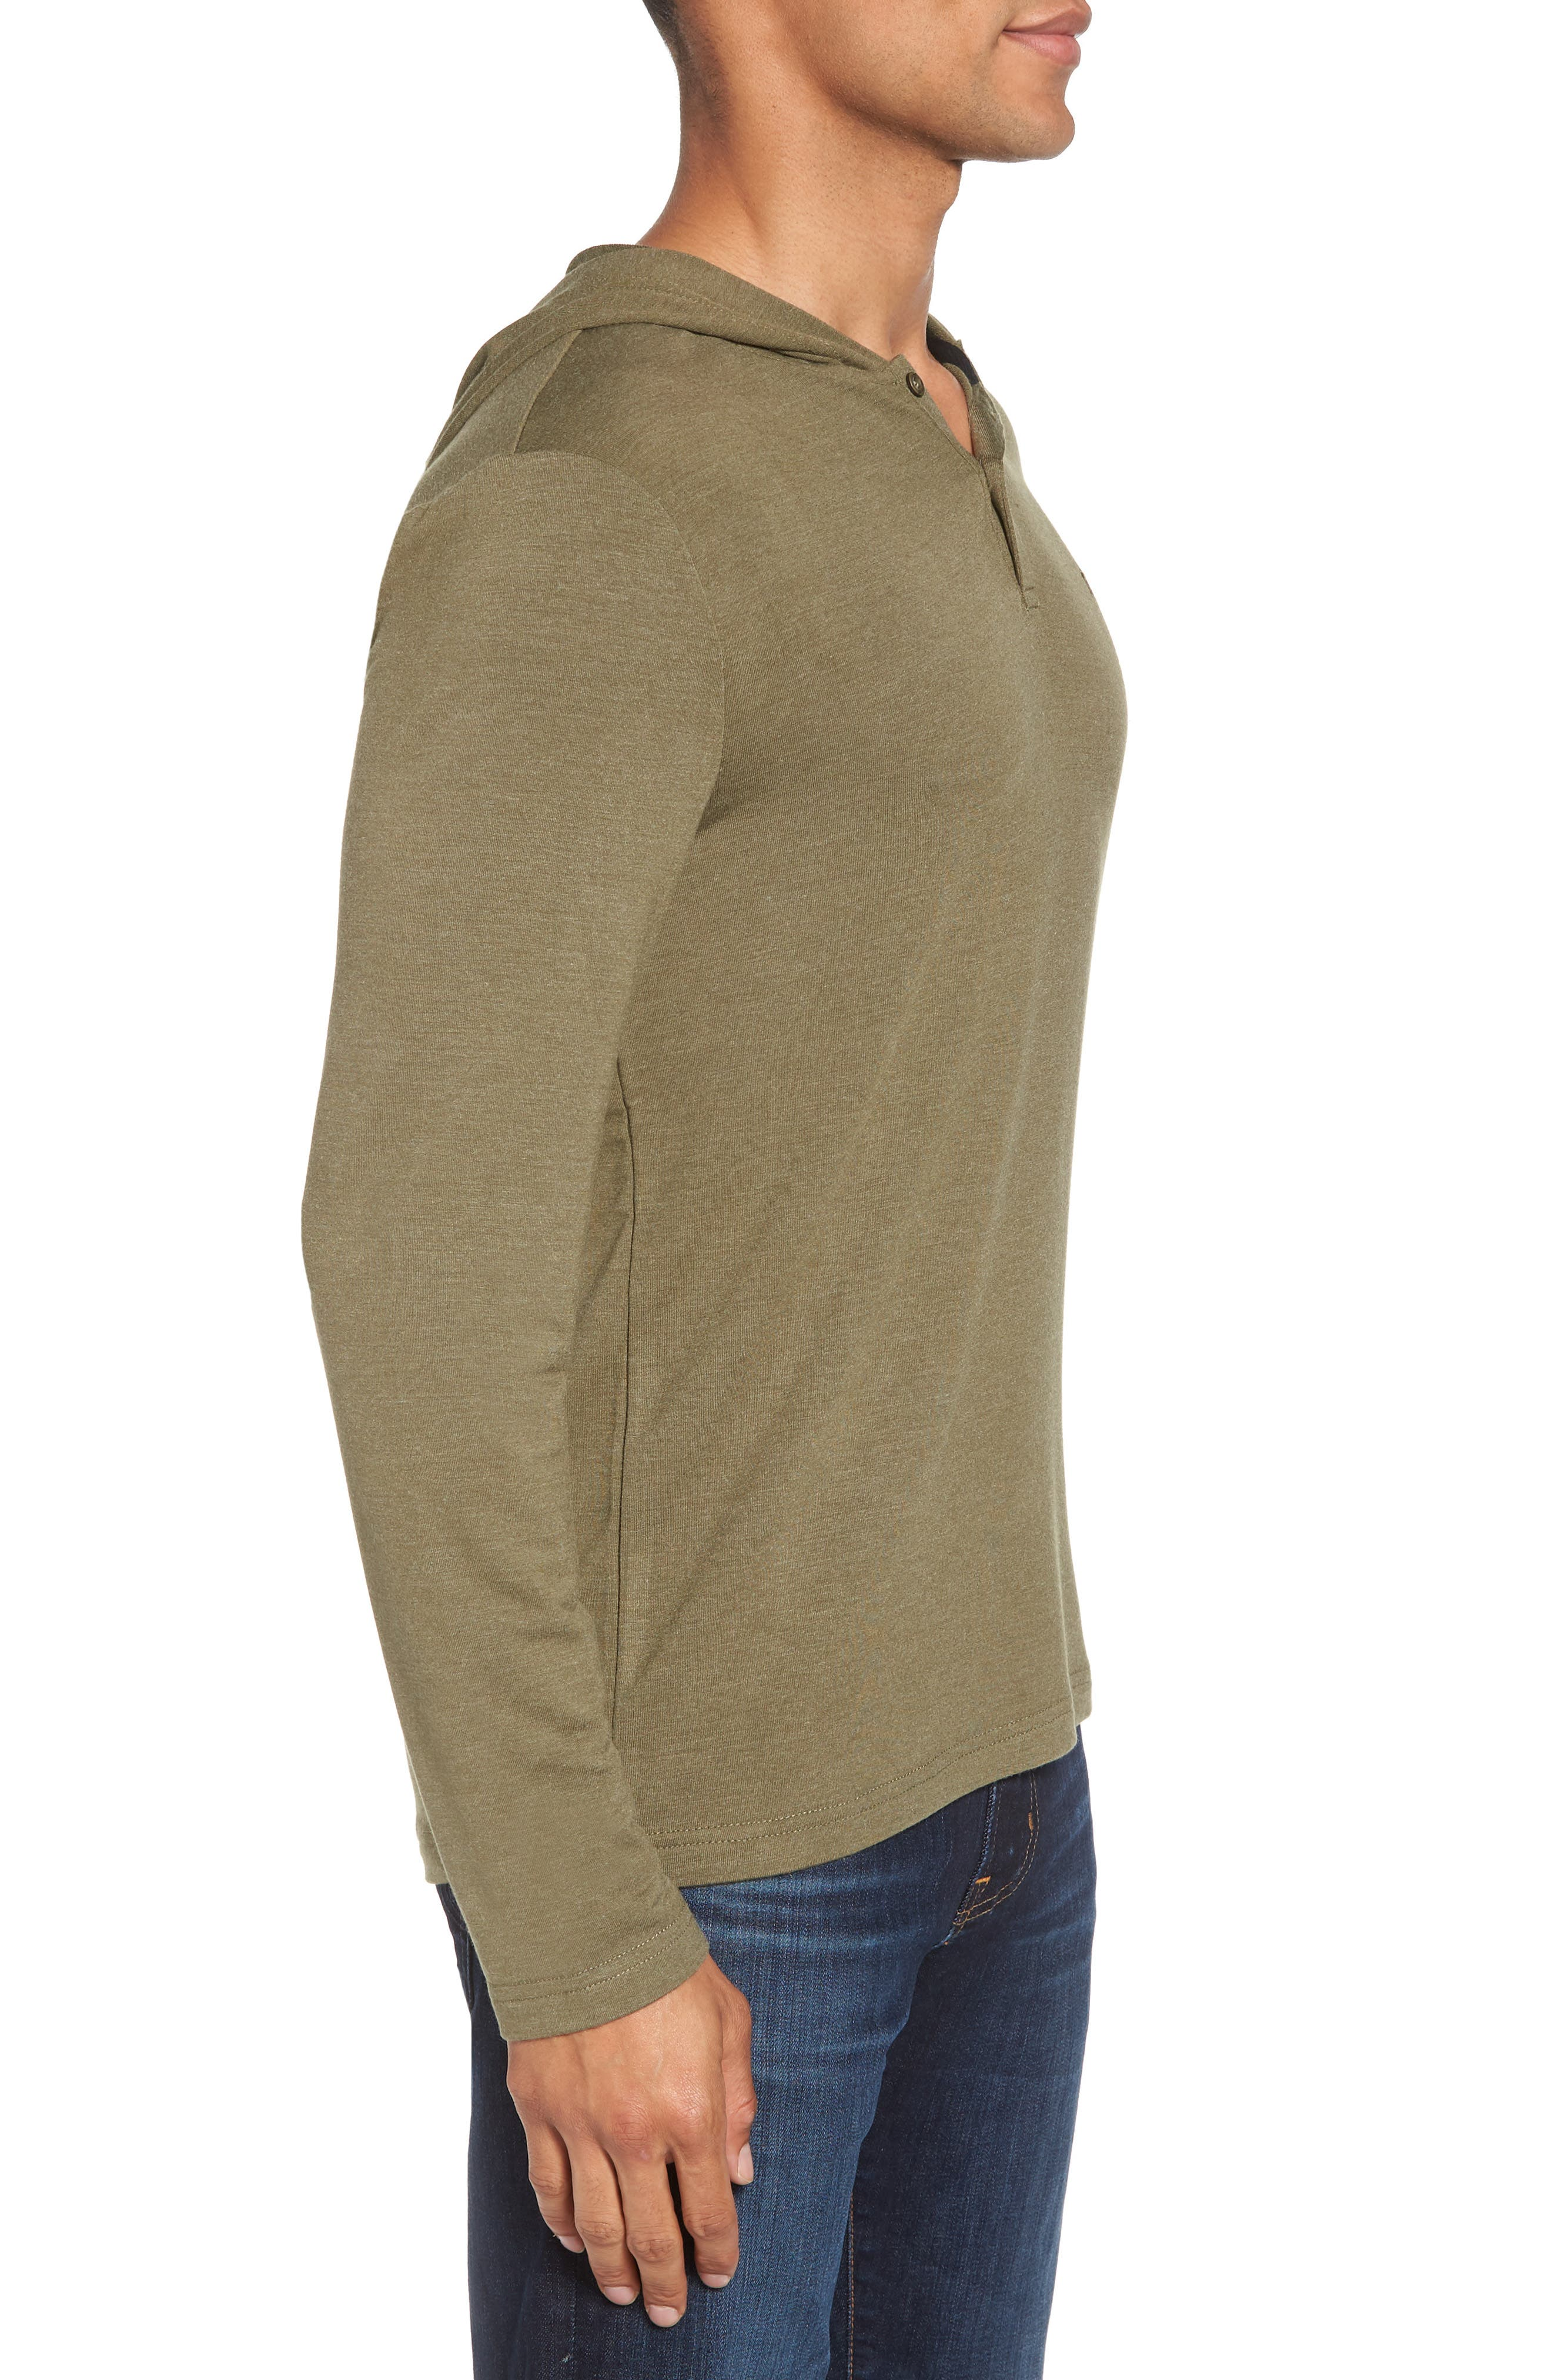 Crossover Hoodie,                             Alternate thumbnail 3, color,                             300